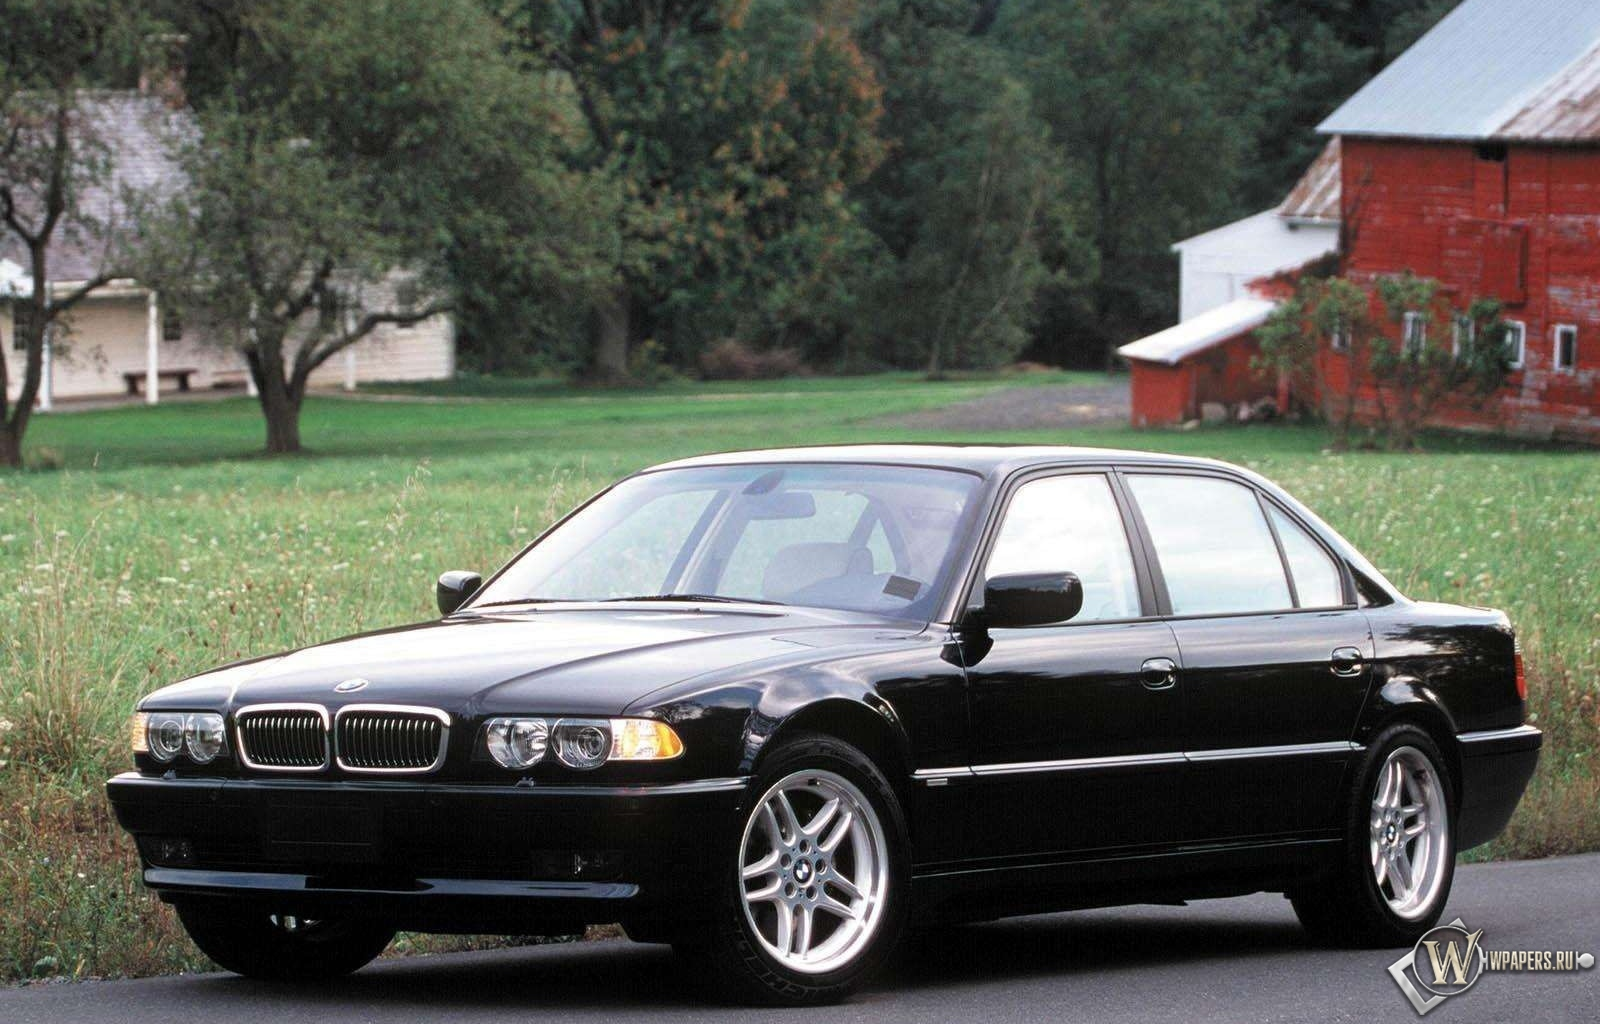 BMW 7 series 725tds 2000 photo - 12